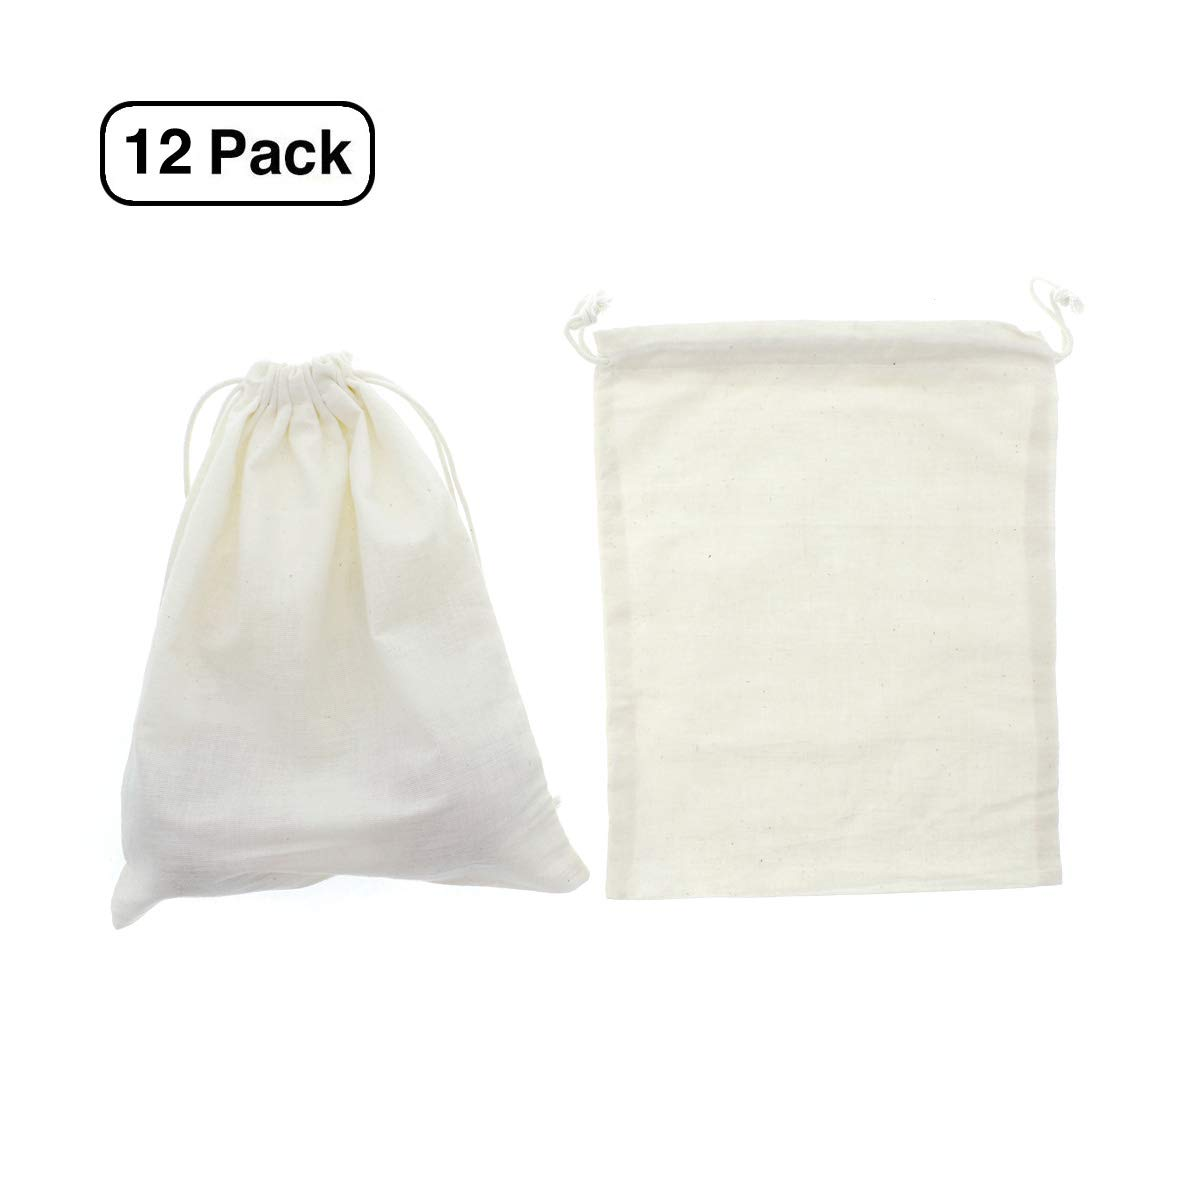 Linen and Bags 8'' x 12'' Natural Cotton High Quality Drawstring Bags Zero Waste Produce Bags 12 Pack